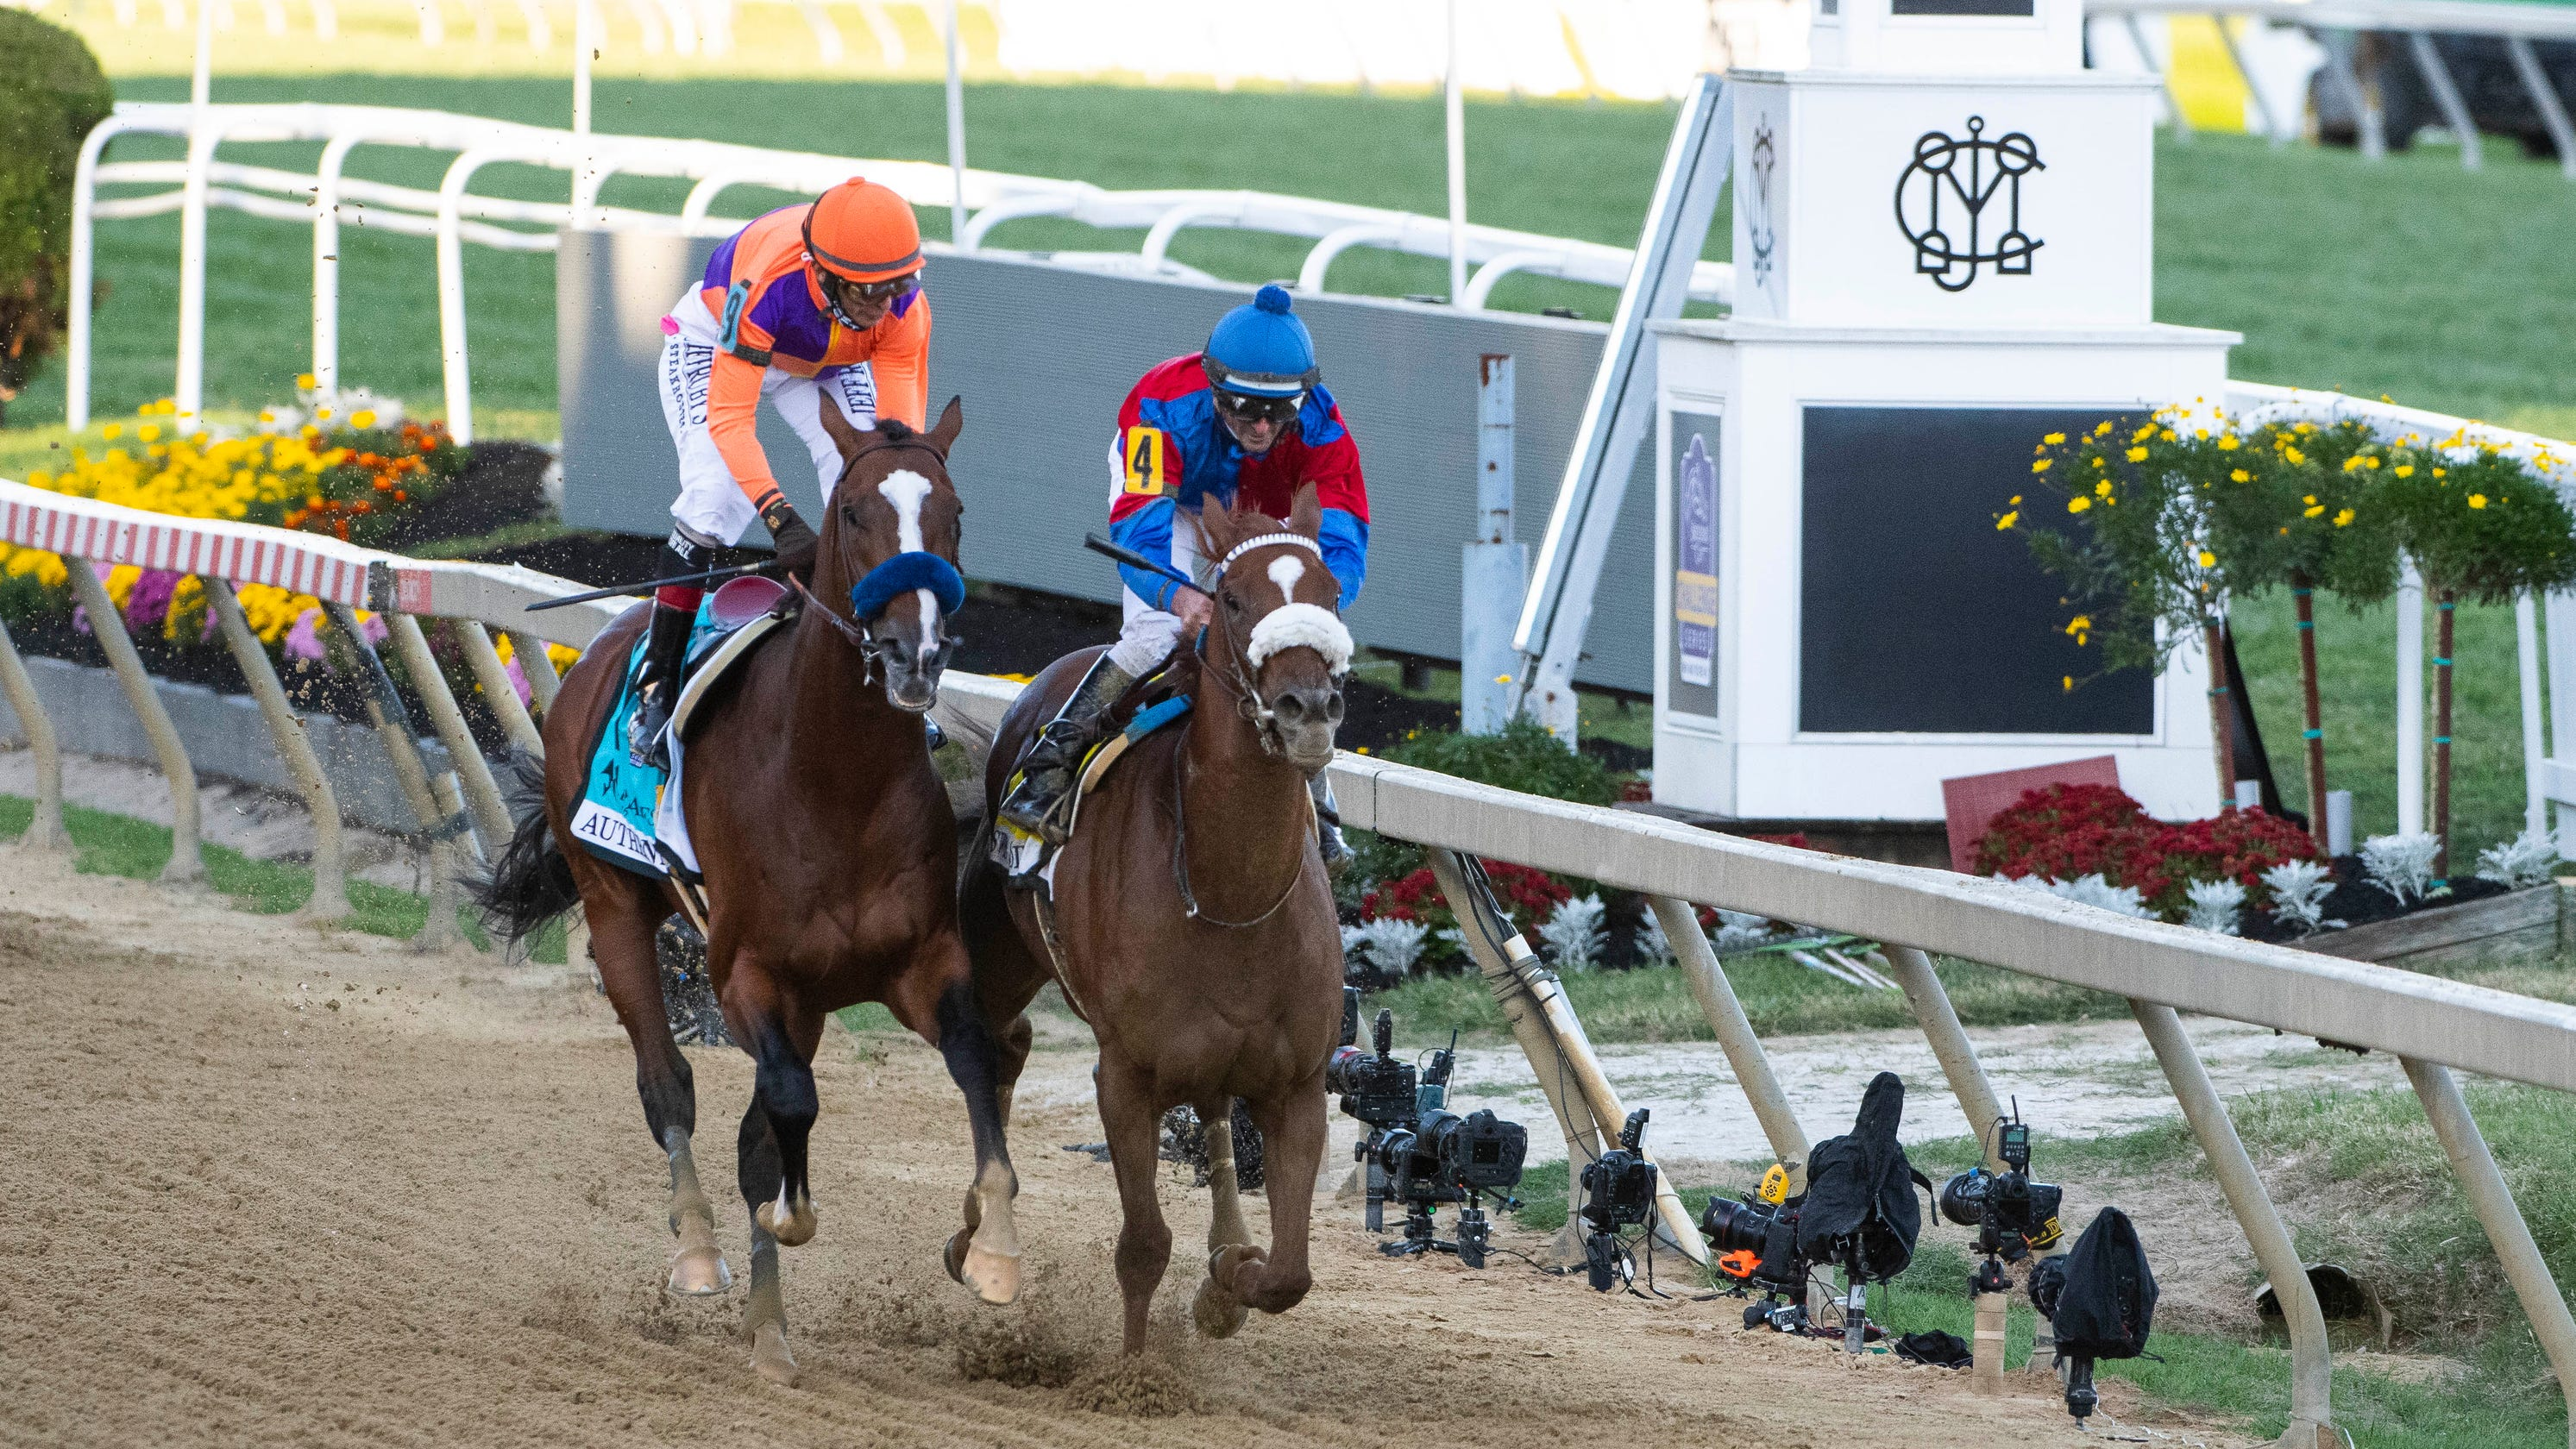 Swiss Skydiver wins Preakness Stakes over Authentic in photo finish